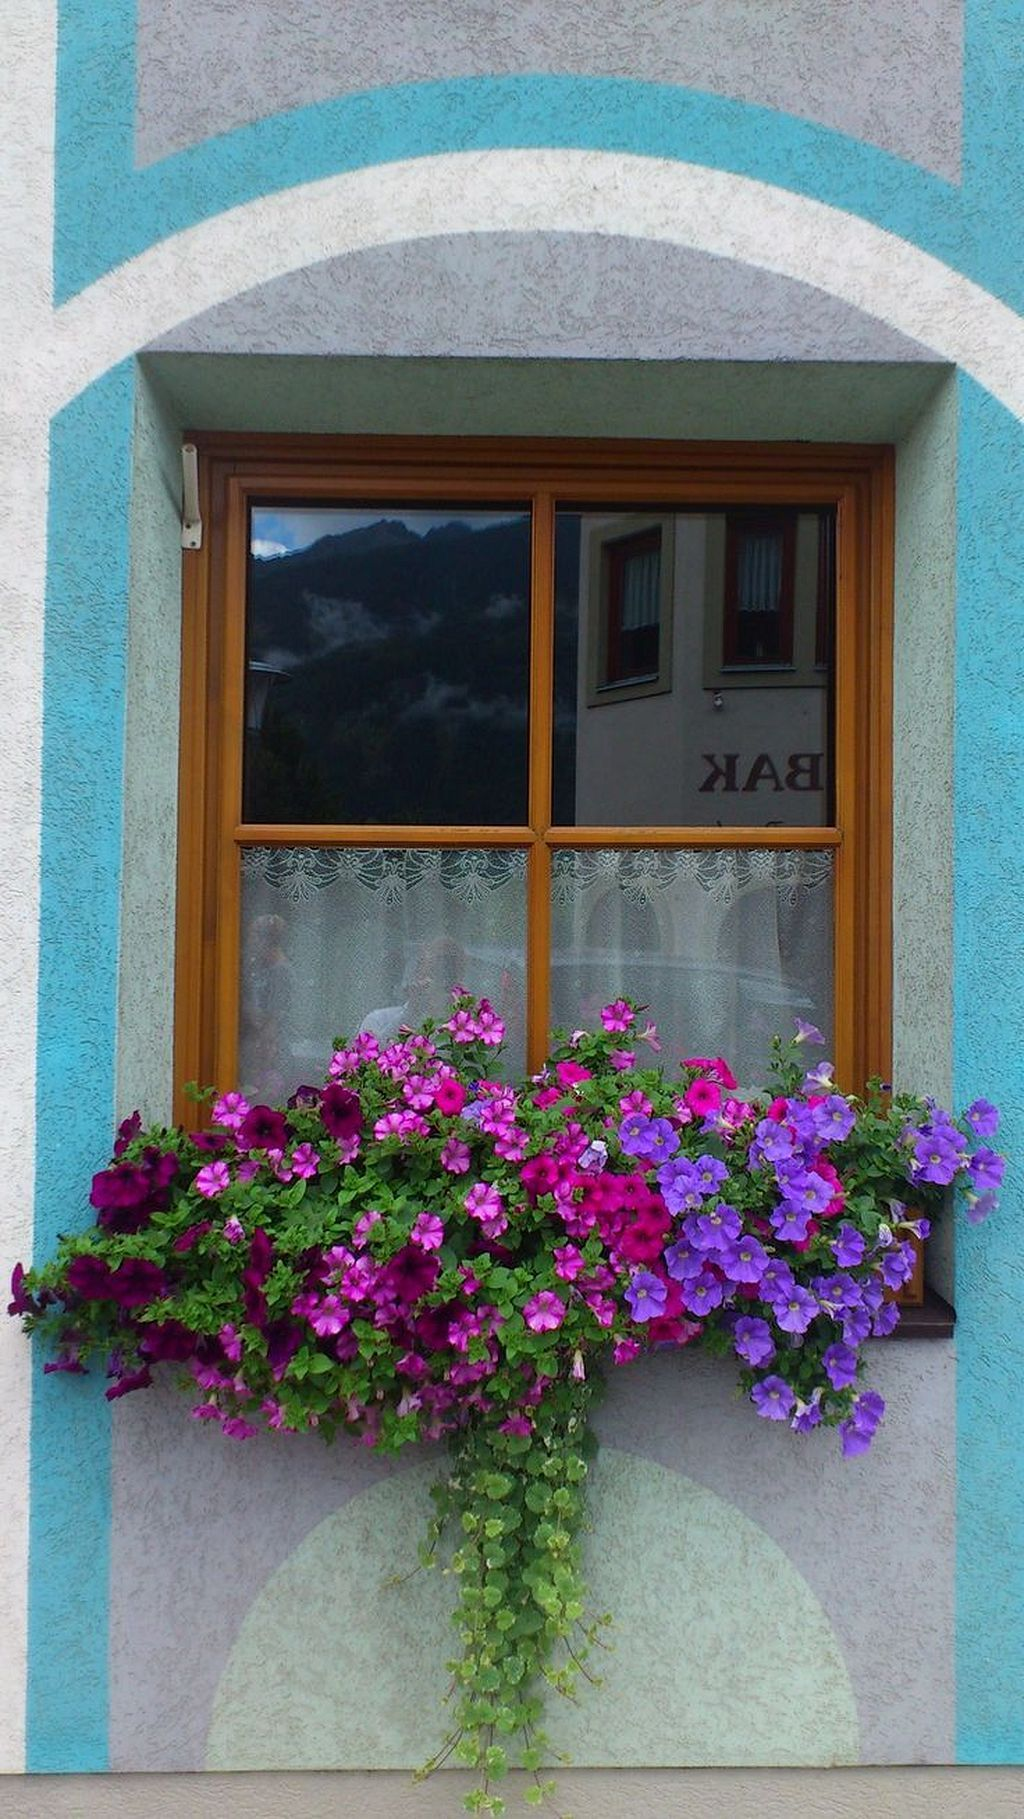 30 awesome flowering window boxes ideas window box